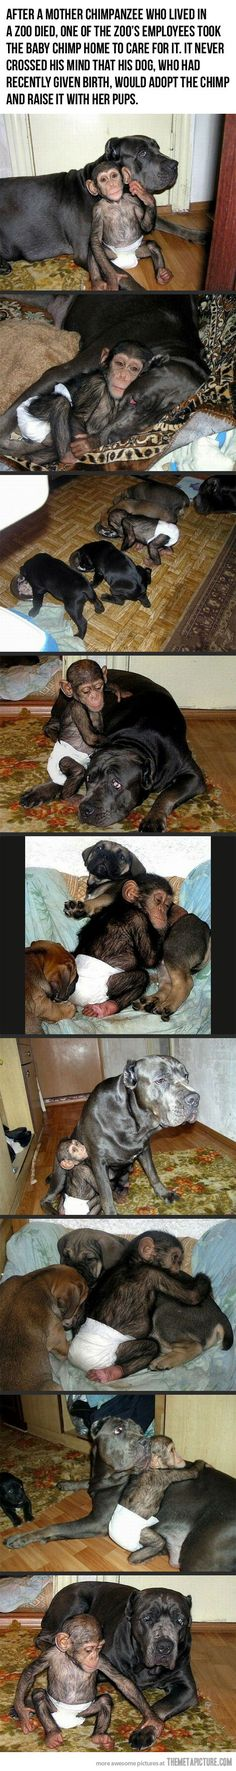 After a mother chimpanzee who lived in a zoo died, one of the zoo's employees took the baby chimp home to care for it. It never crossed his mind that his dog, who had recently given birth, would adopt the chimp and raise it with her pups. Awe..